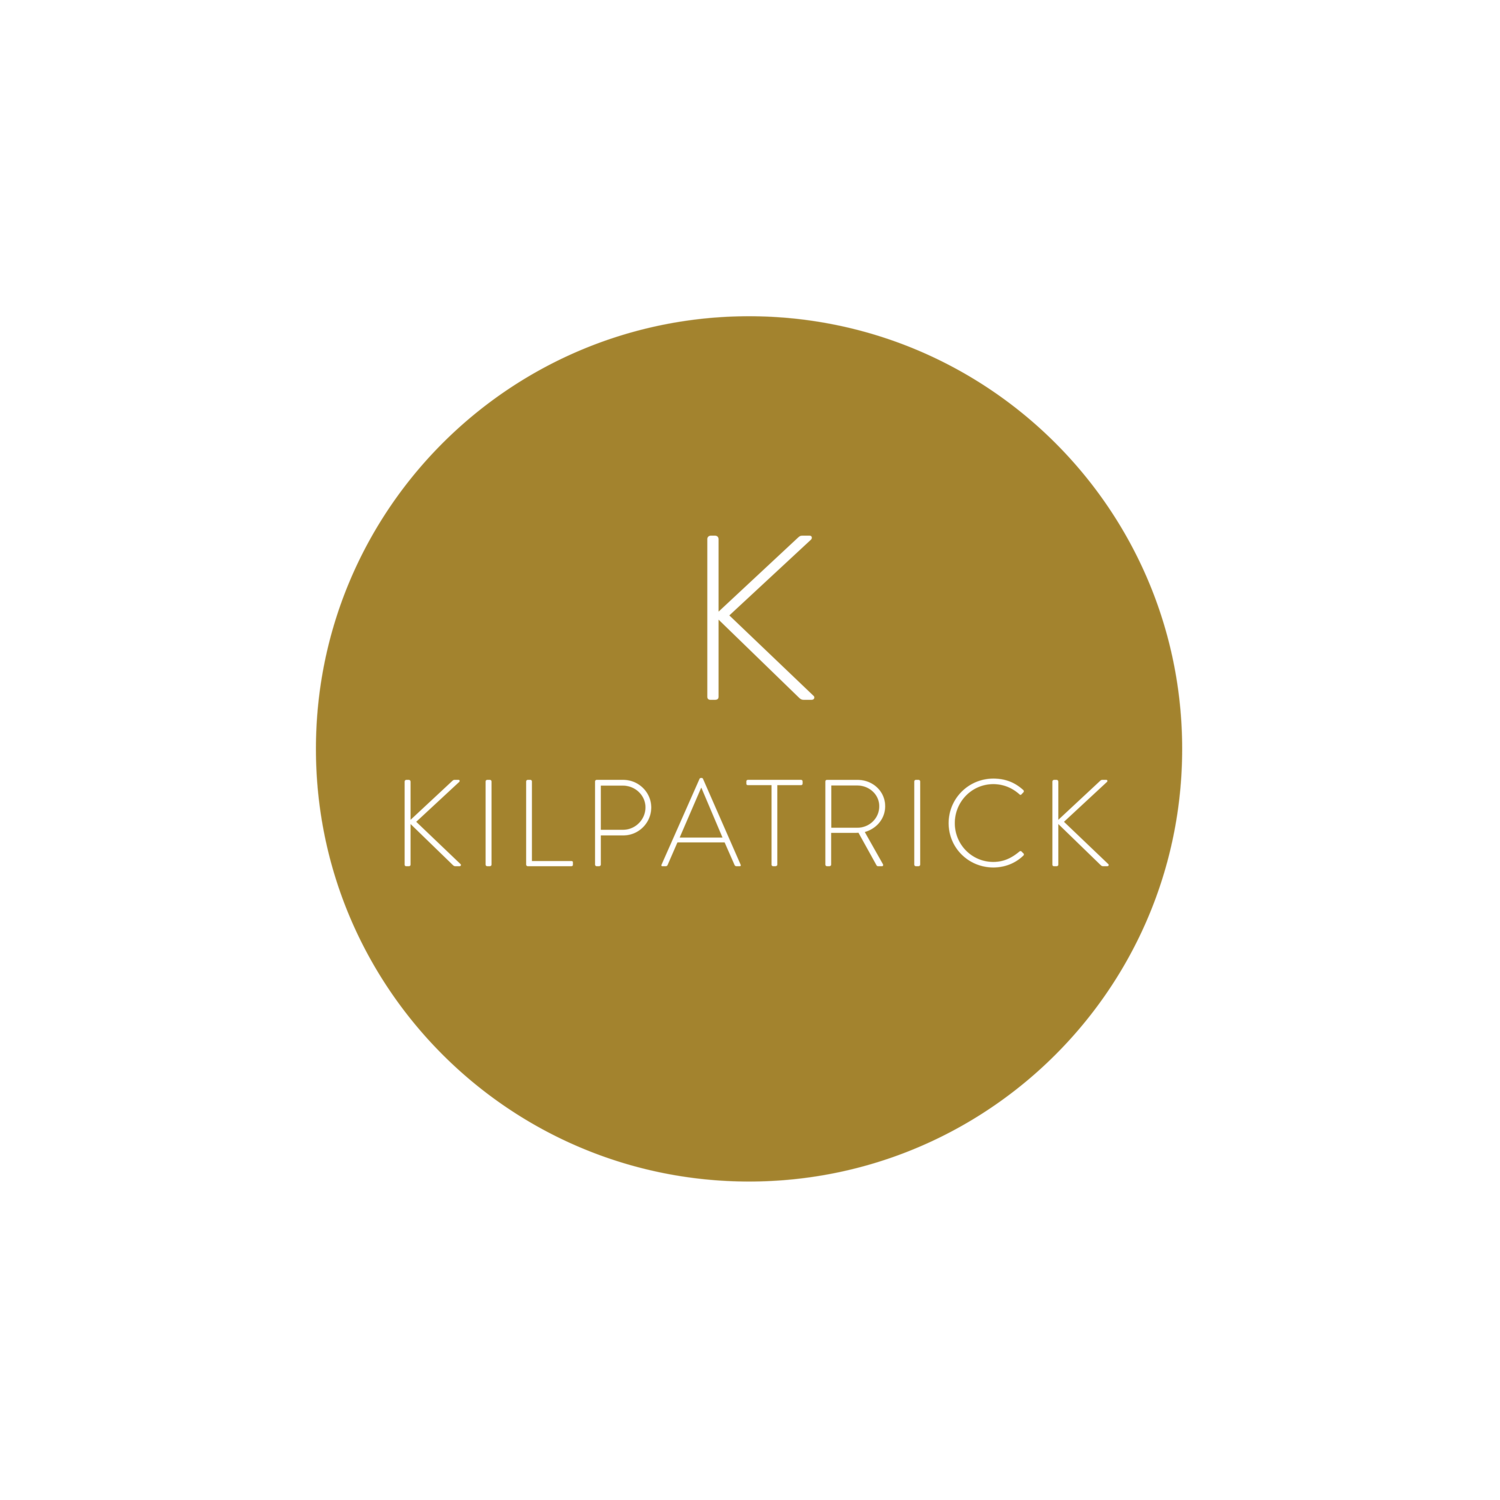 Kilpatrick | Communication Specialists in Beauty, Lifestyle and Wellness